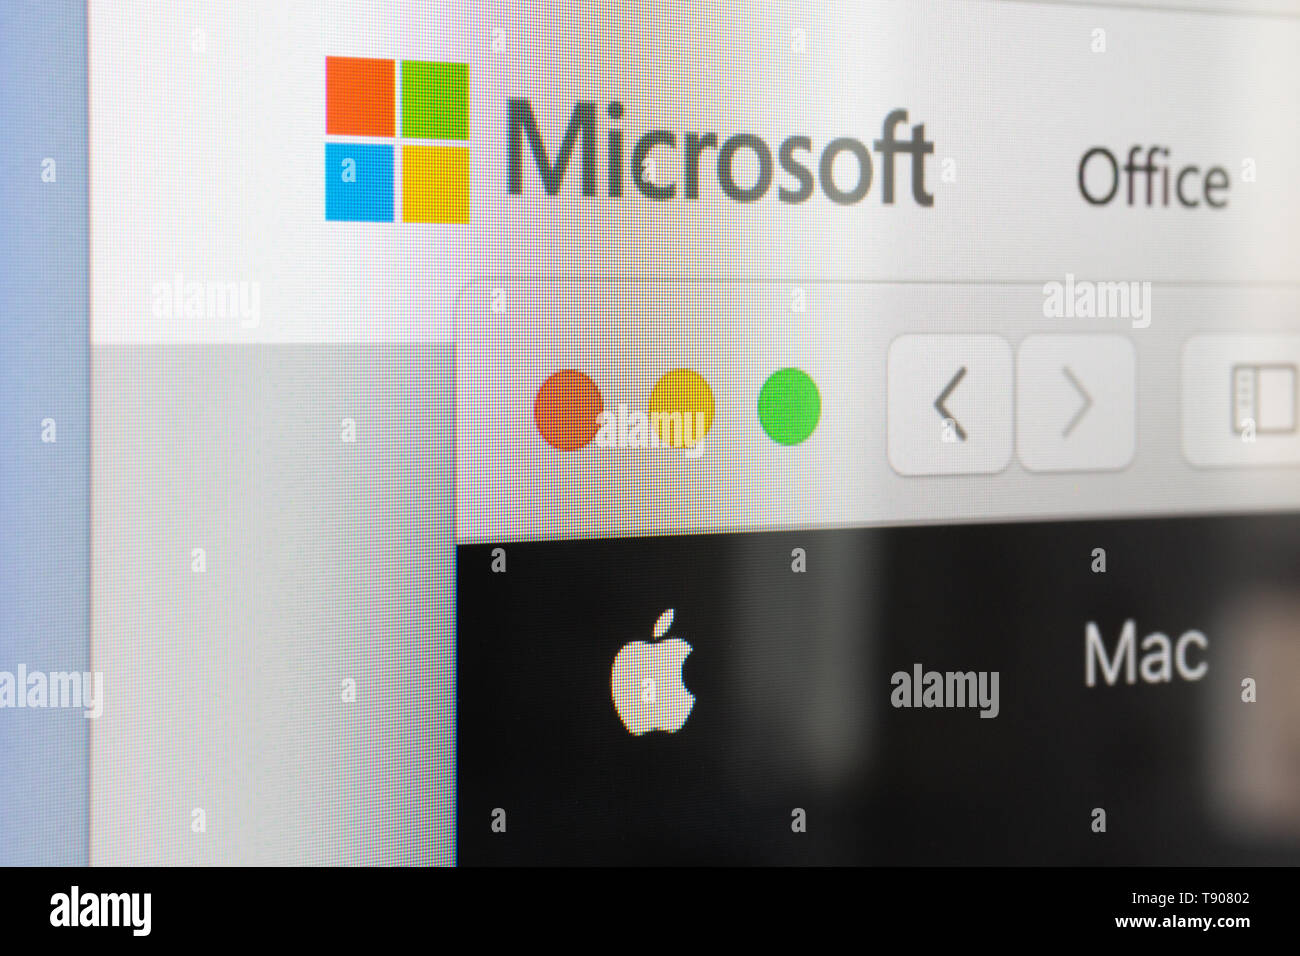 HUNGARY - SEPTEMBER 17, 2018: Microsoft and Apple websites in browser side by side on screen Stock Photo